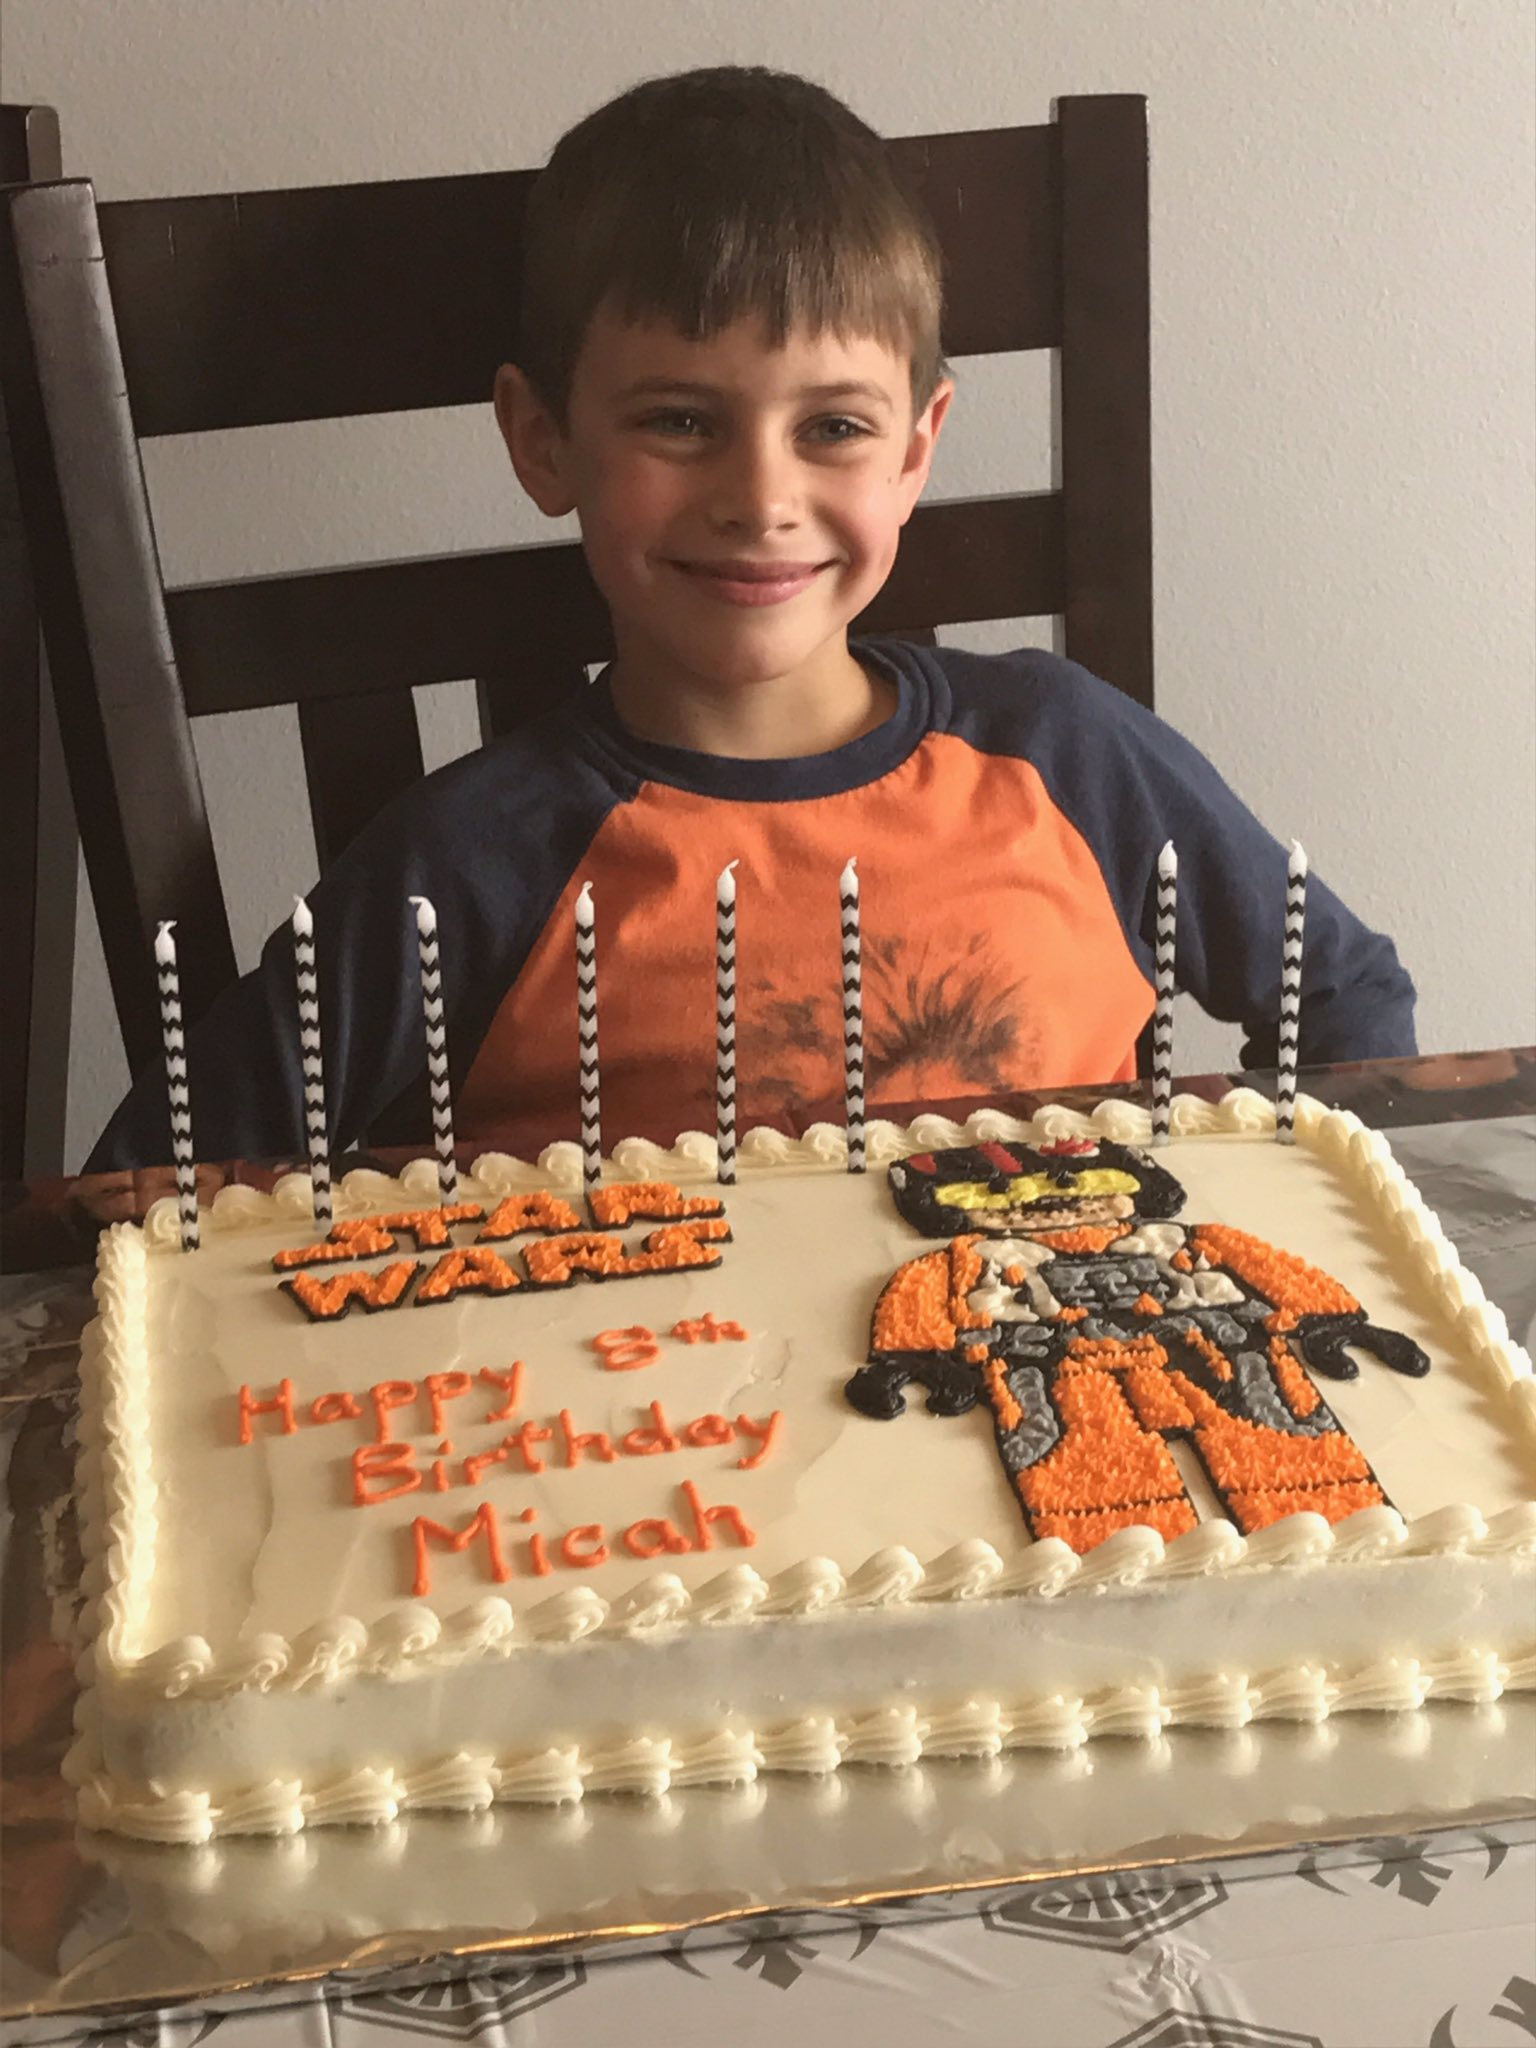 Happy 8th birthday to our grandson Micah! We are so proud of you! https://t.co/Iw0gdUpZPk